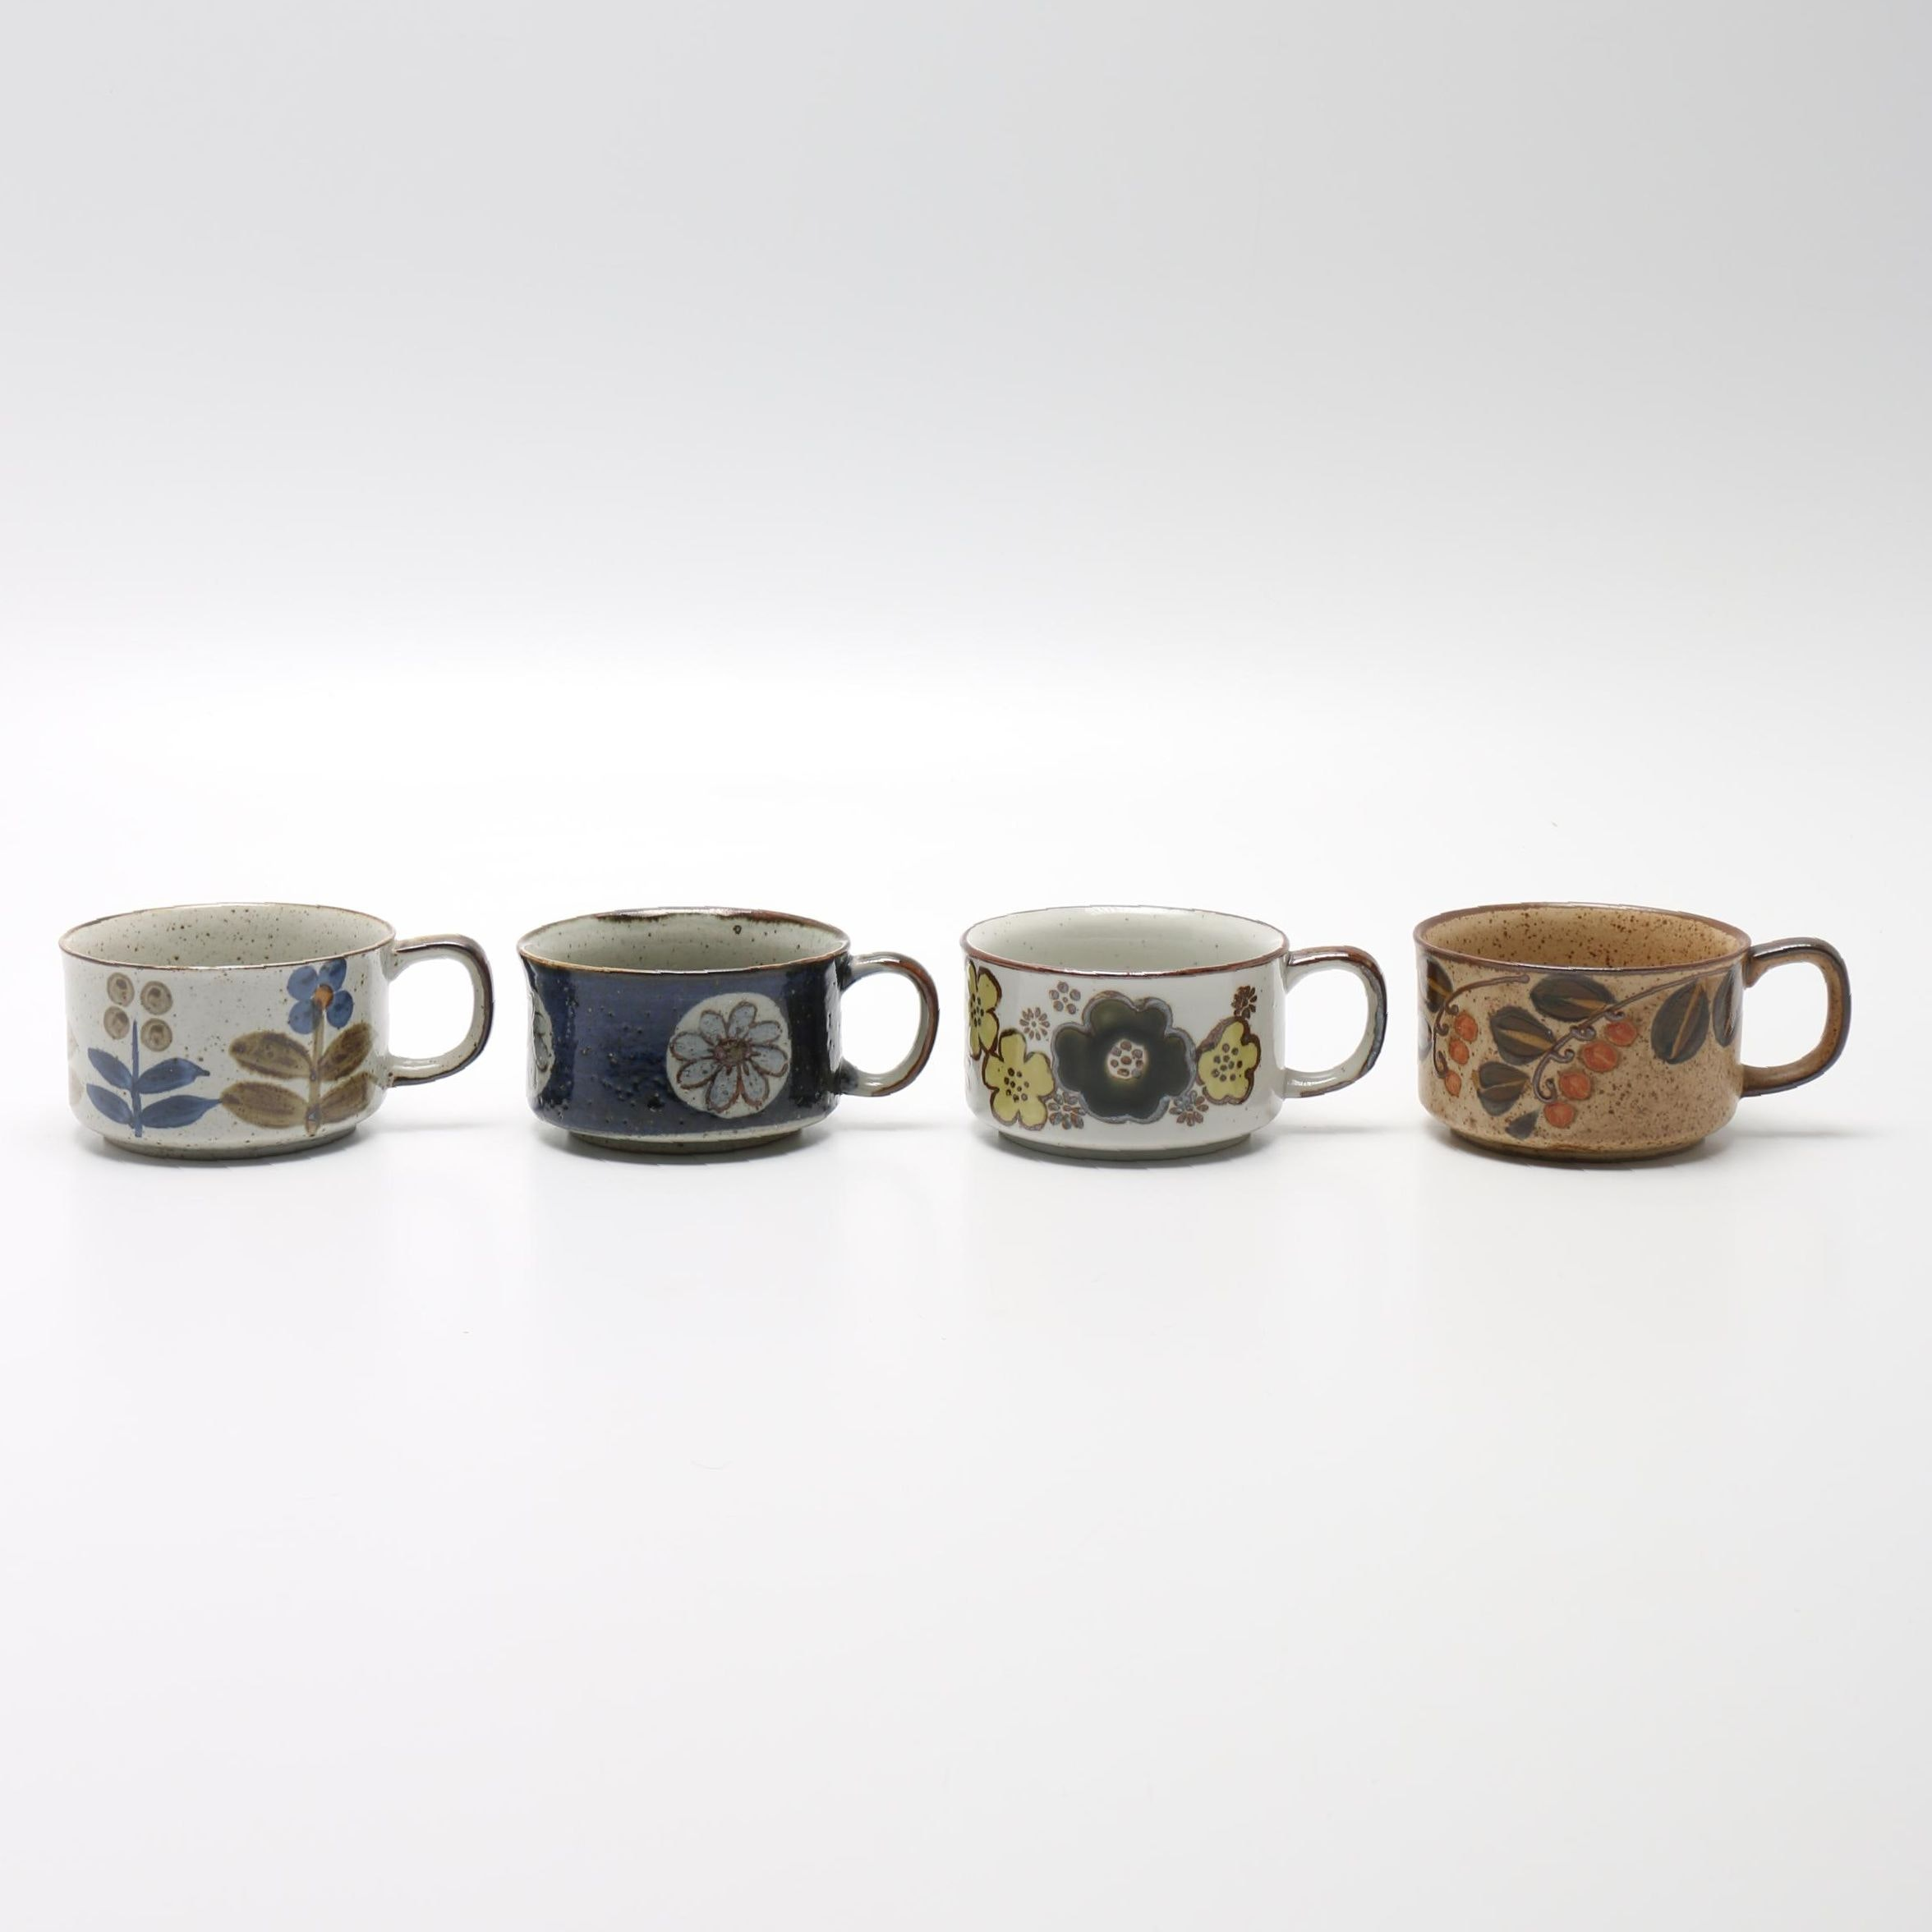 Handmade Floral Stoneware Soup Mugs